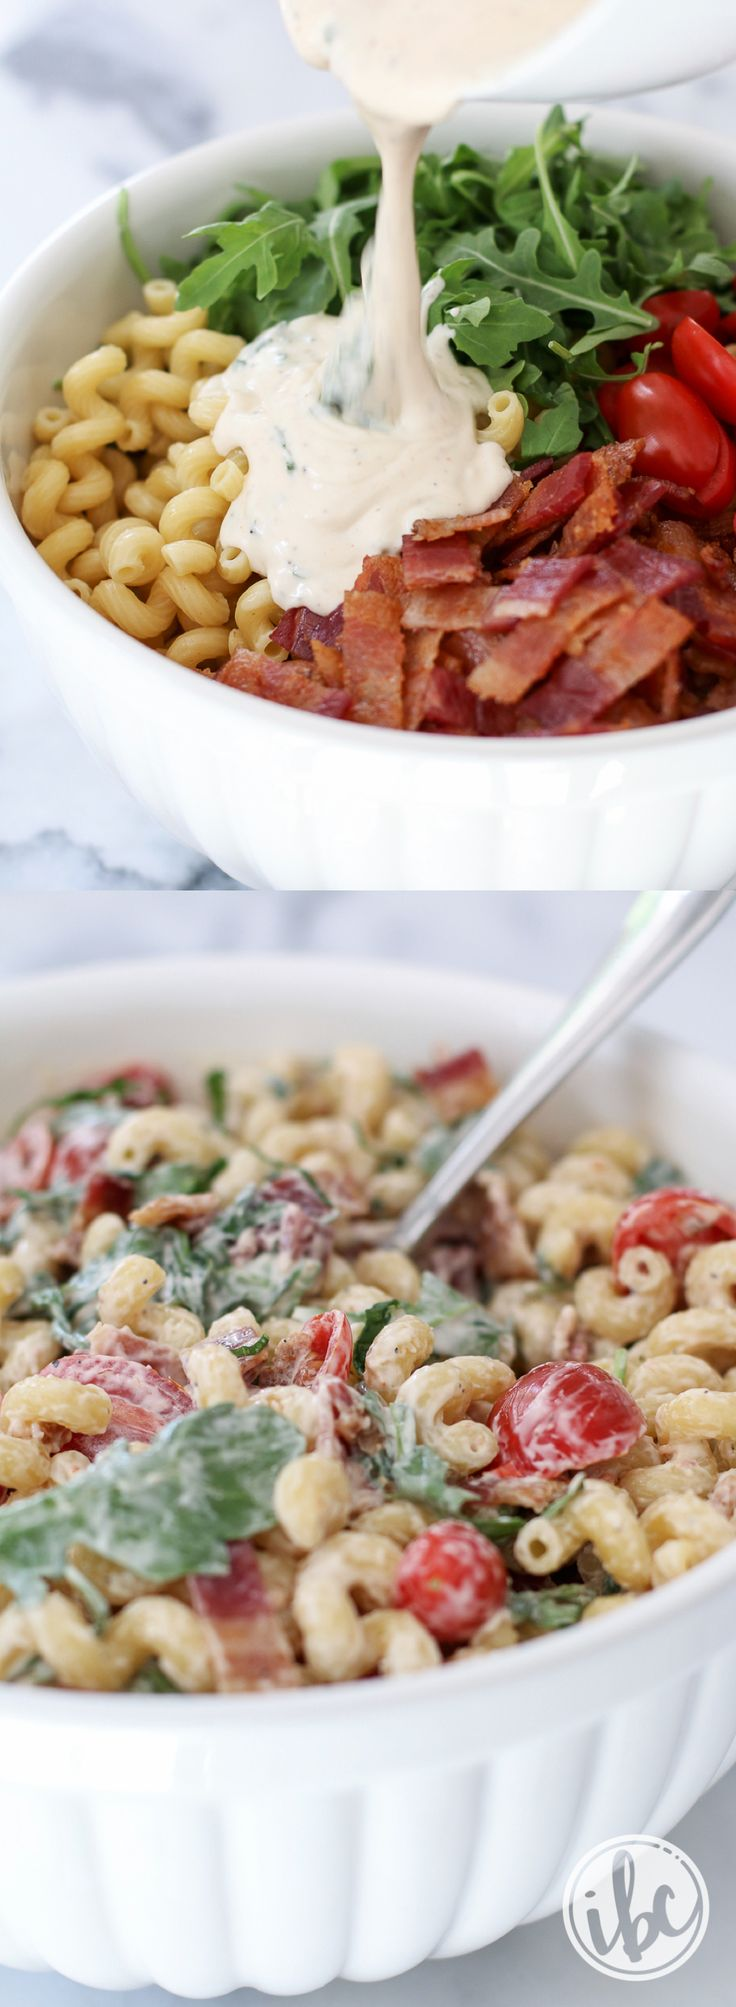 Upgrade your summer pasta salad recipe with this BLT Macaroni Salad. So delicious!